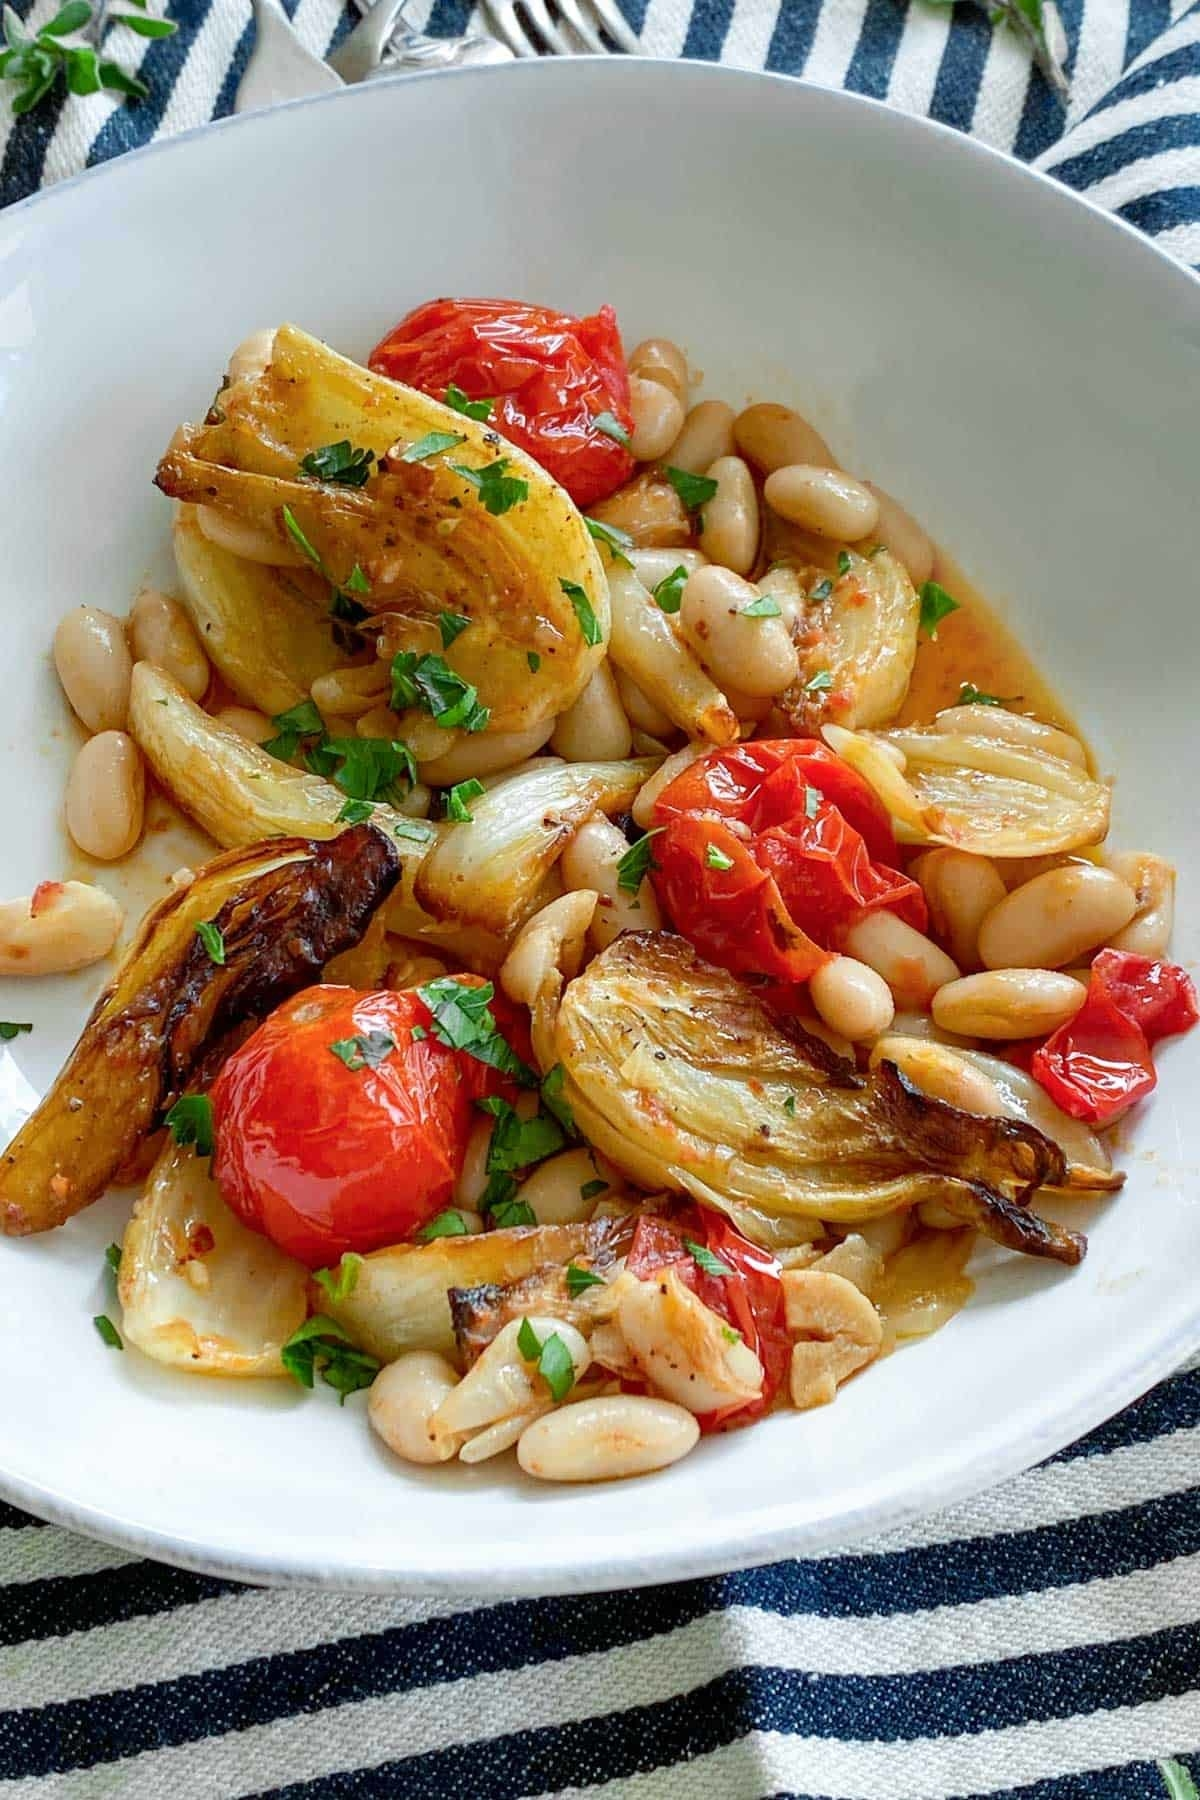 Roasted fennel with white beans and tomatoes.